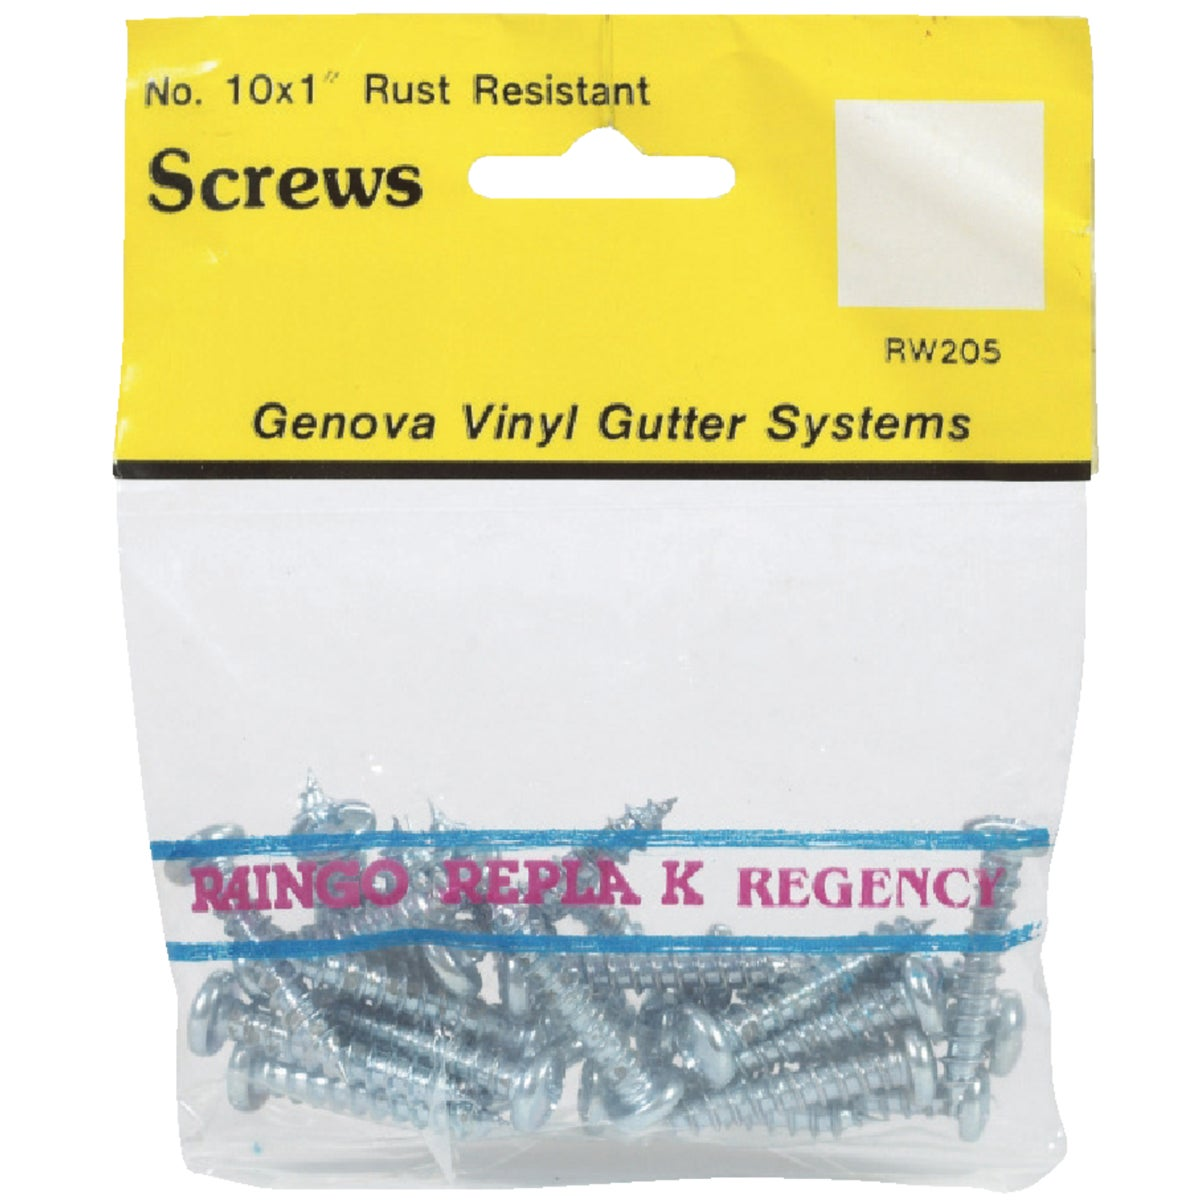 25/BAG RUSTPROOF SCREWS - RW205 by Genova Products